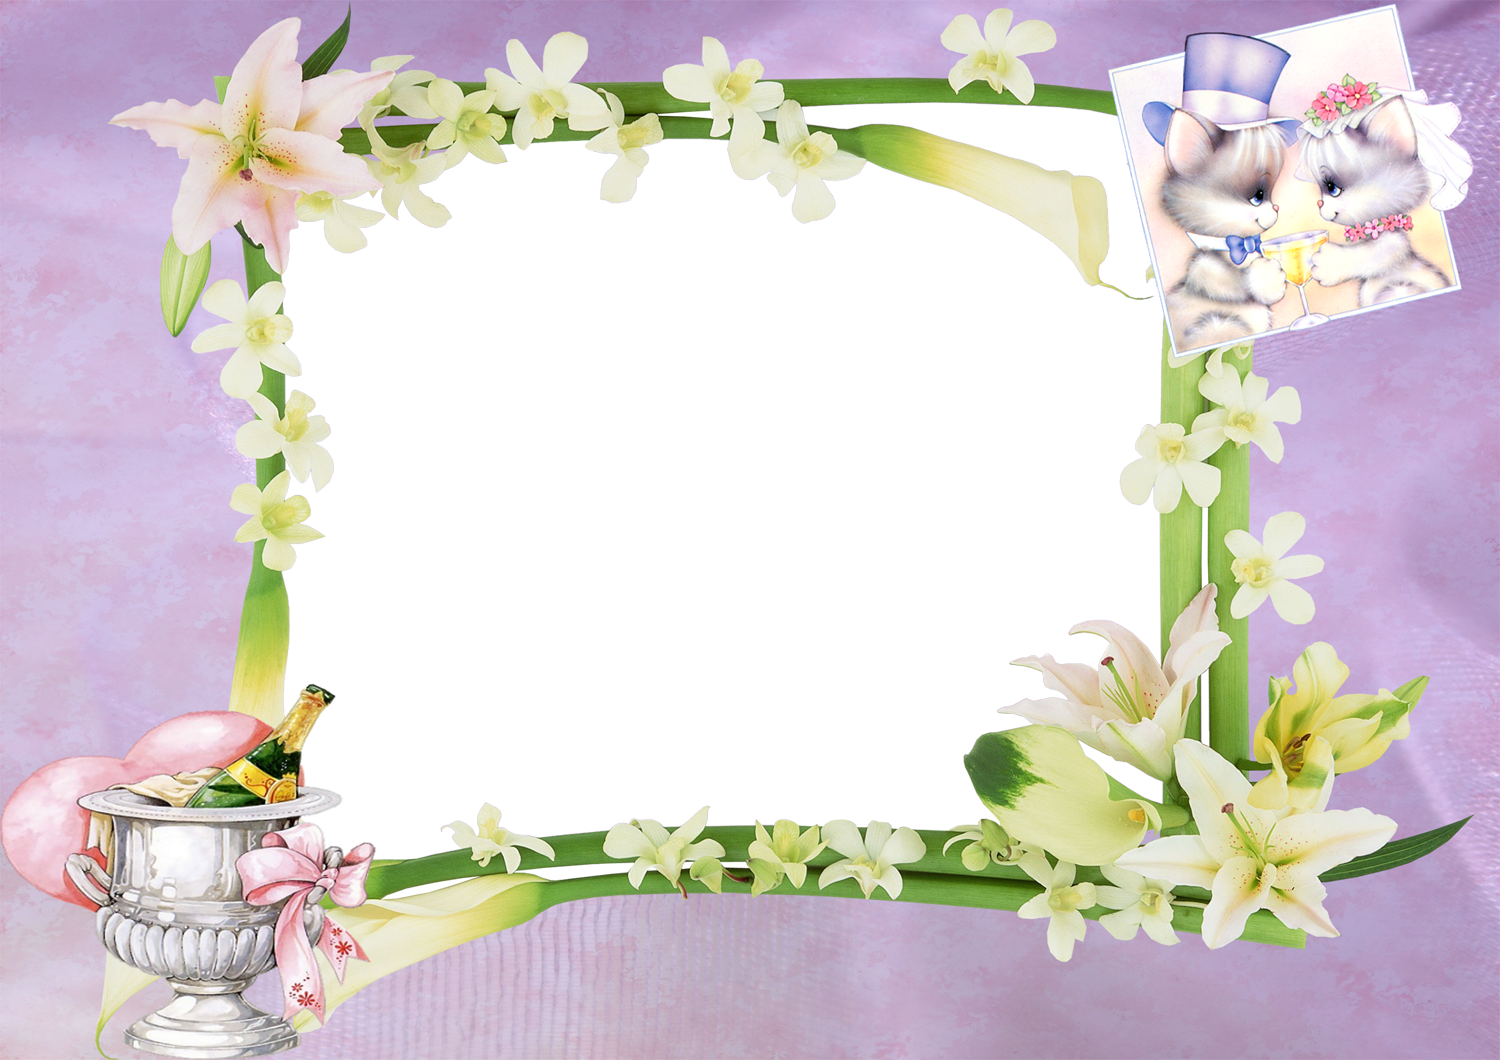 Frames For Photoshop - Wedding Frame In Hd - (1500x1060) Png